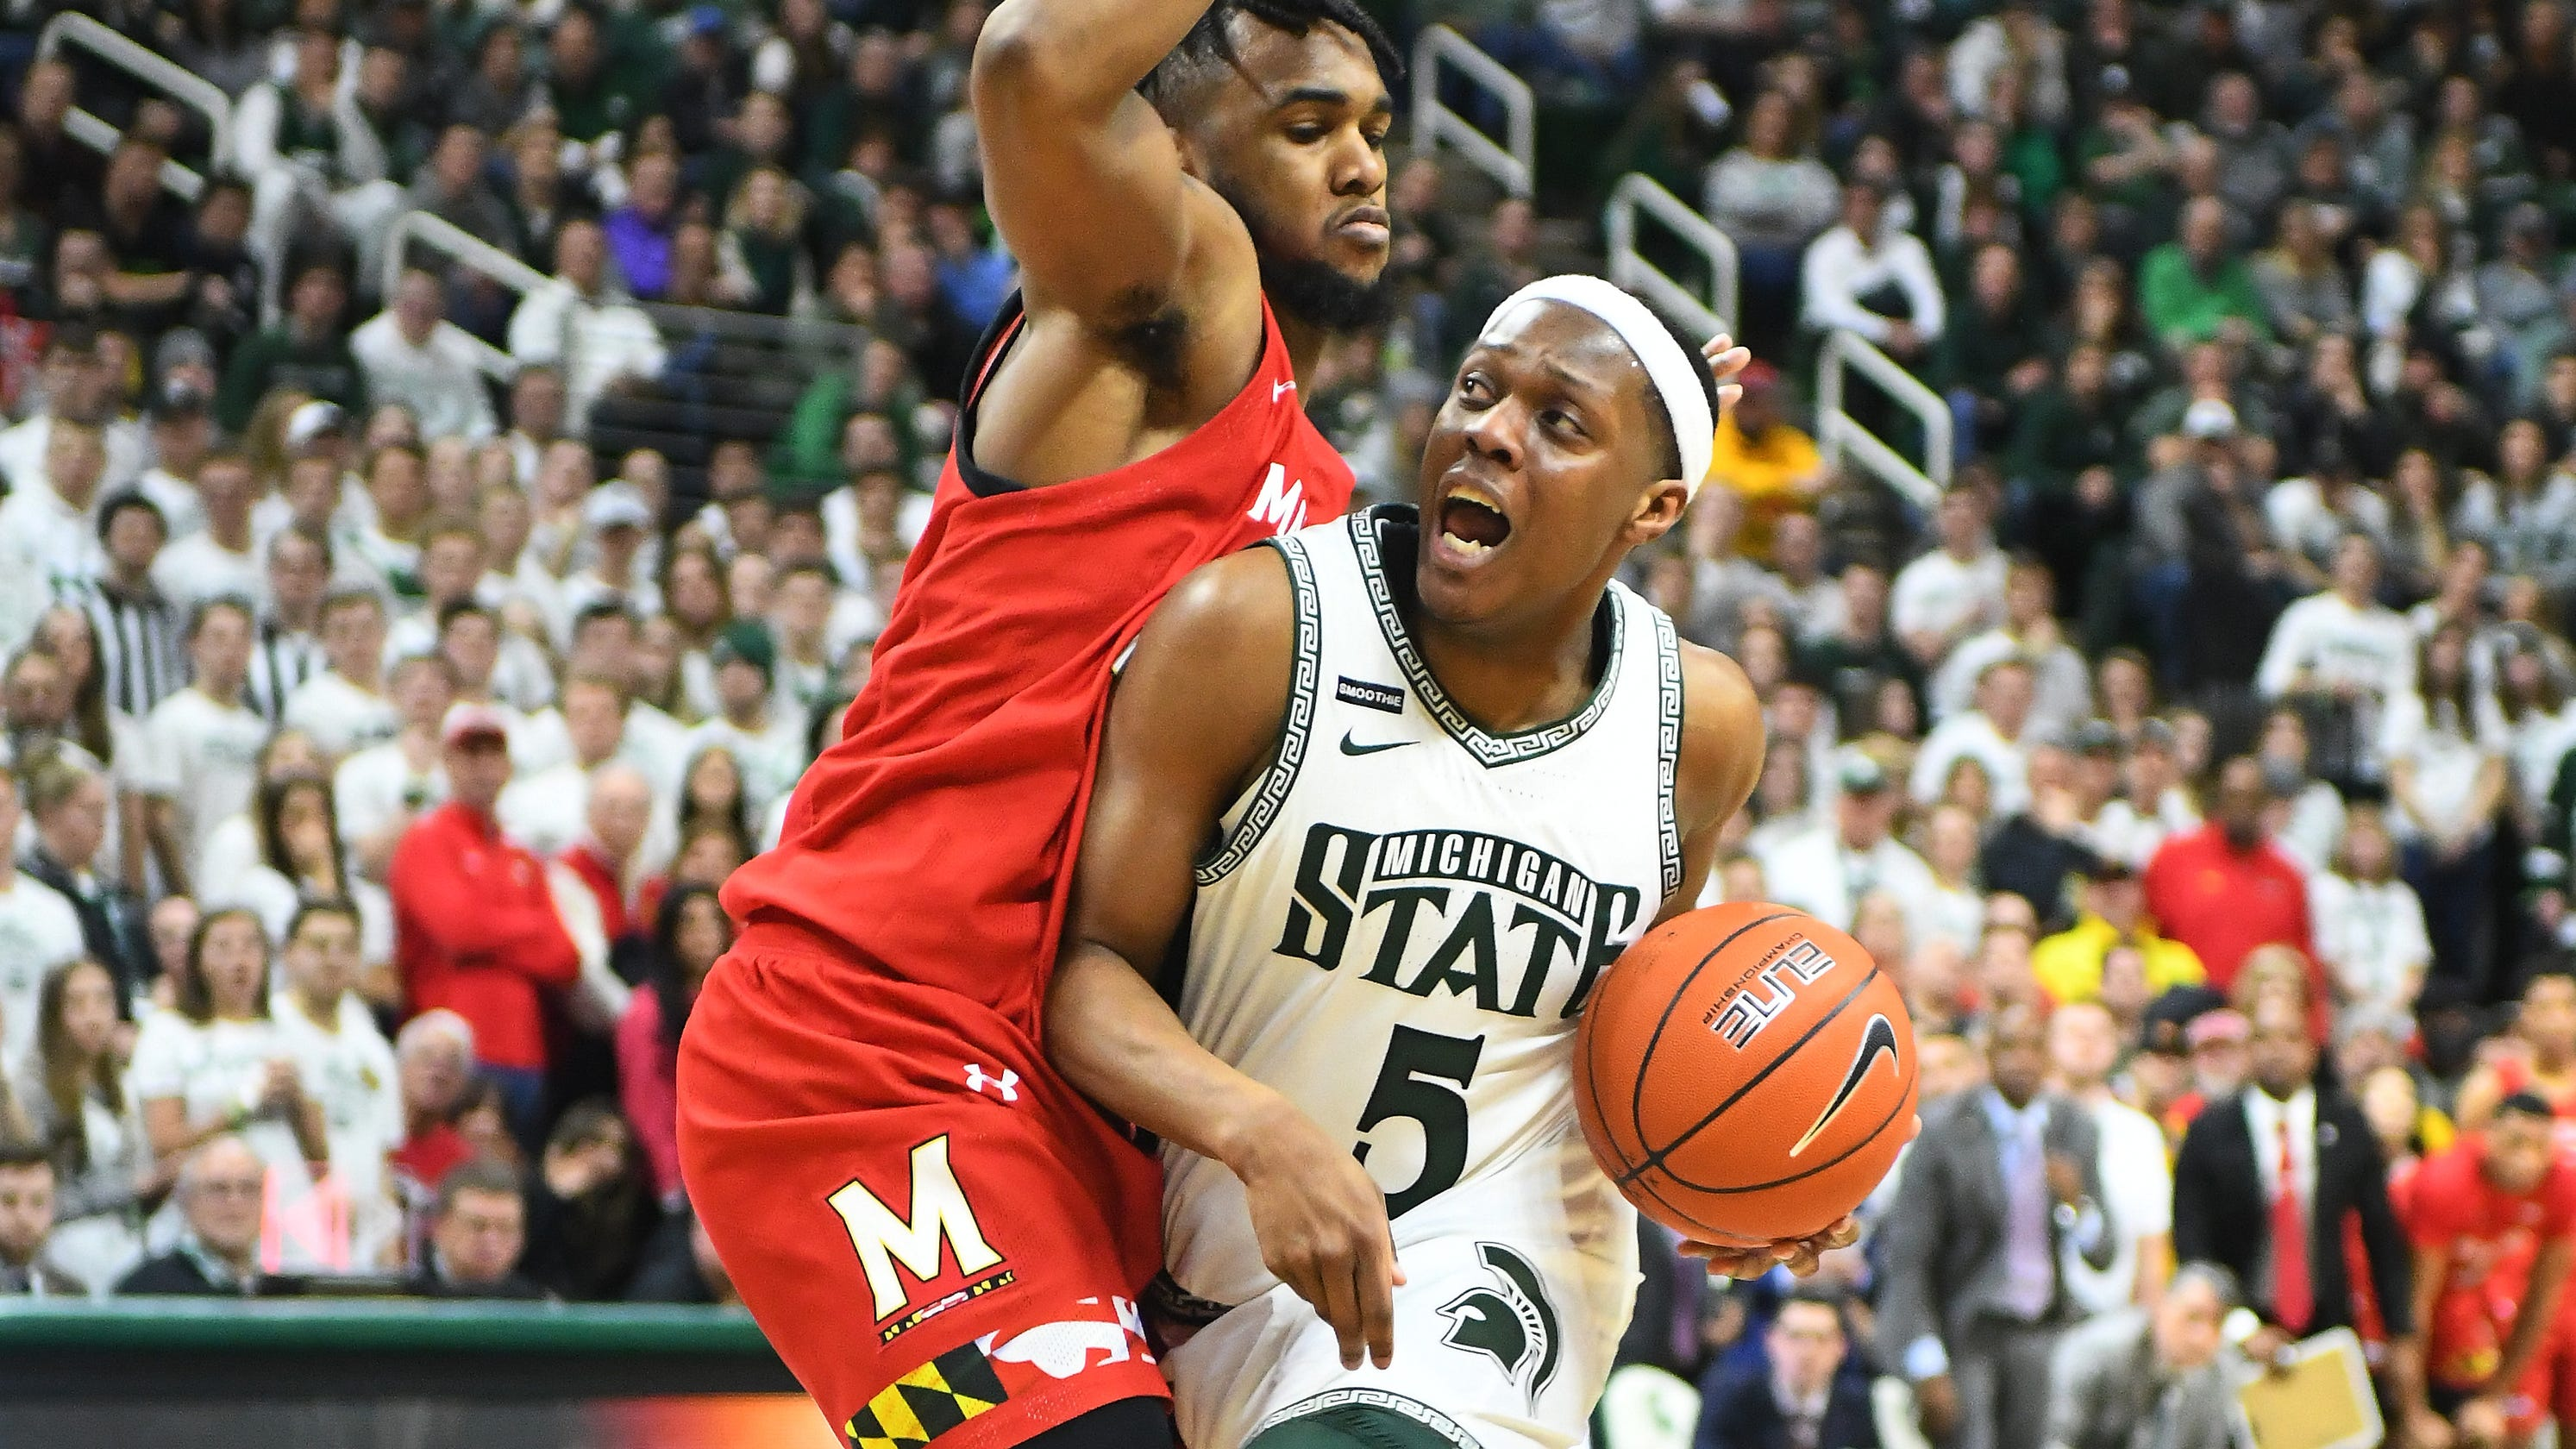 Michigan State 'finding ways to lose' in freefalling Big Ten stretch